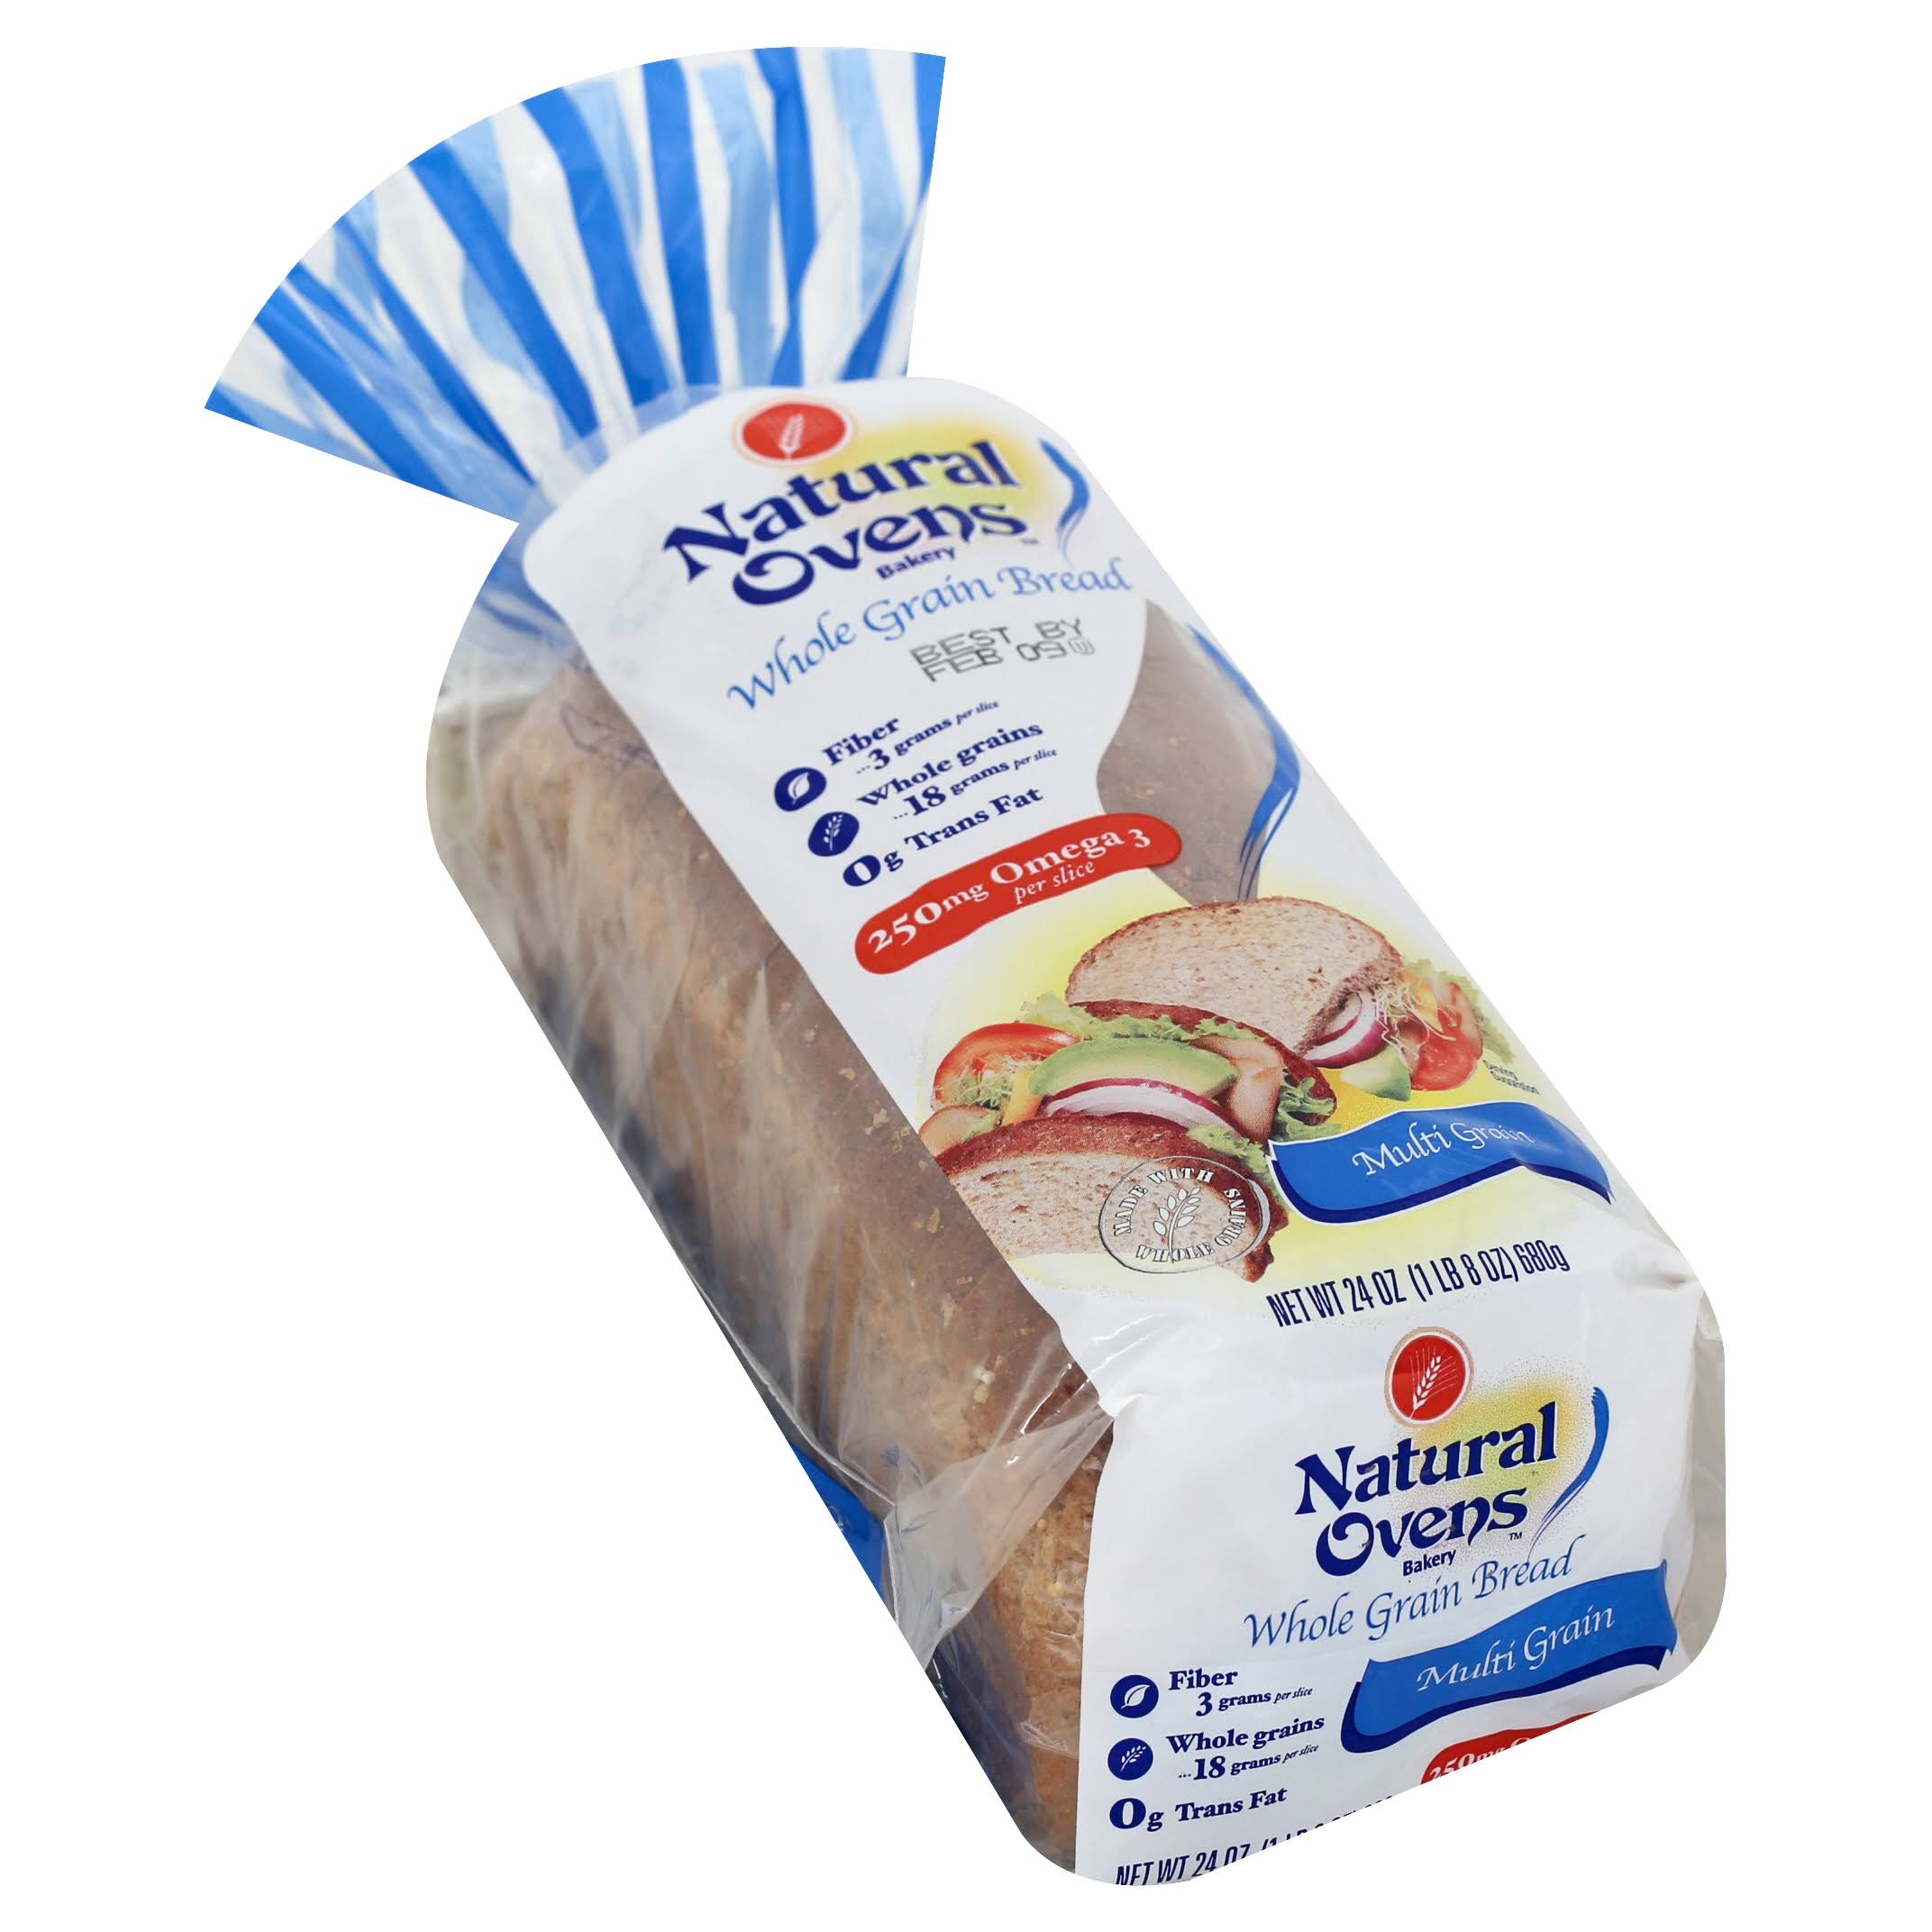 Natural Ovens Multigrain Bread - 24 oz loaf